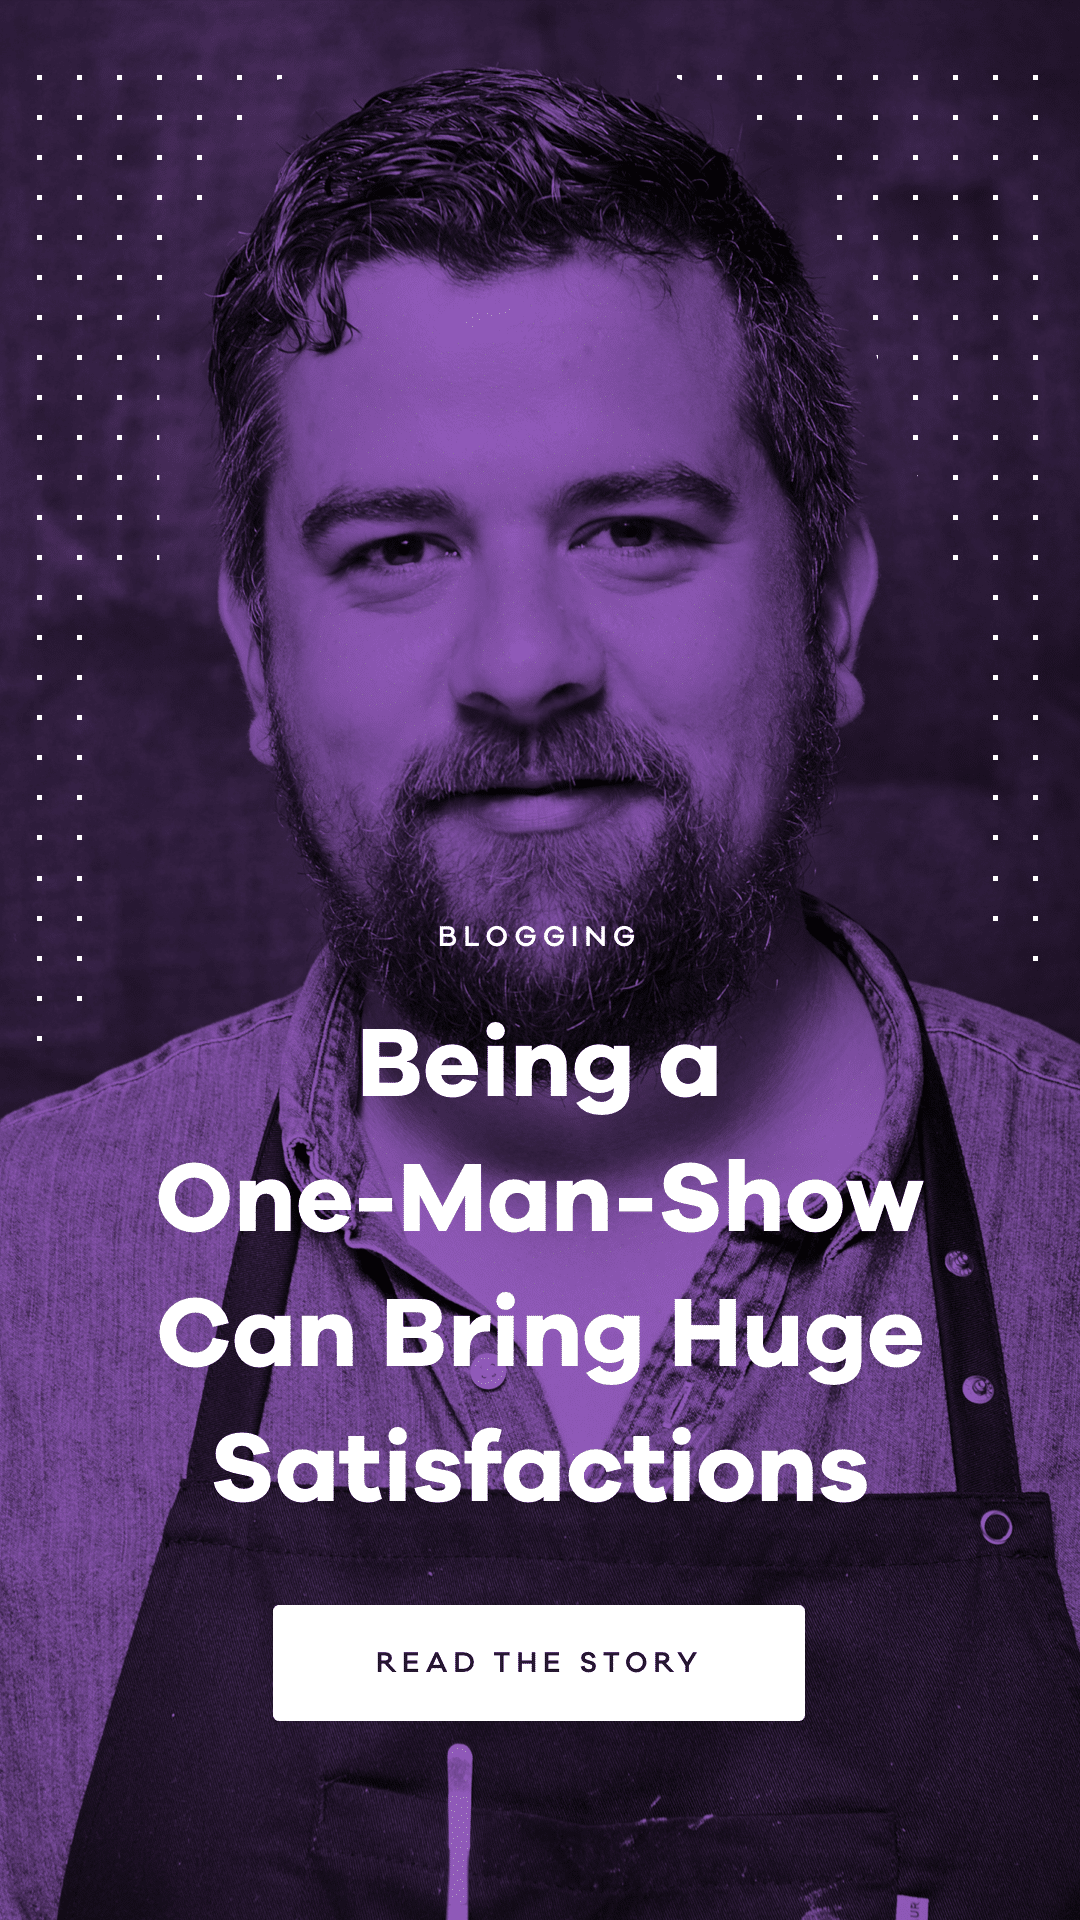 Learn from Thomas Alcayala how you can be a successful one-man-show as a blogger and do work that makes you happy and proud.